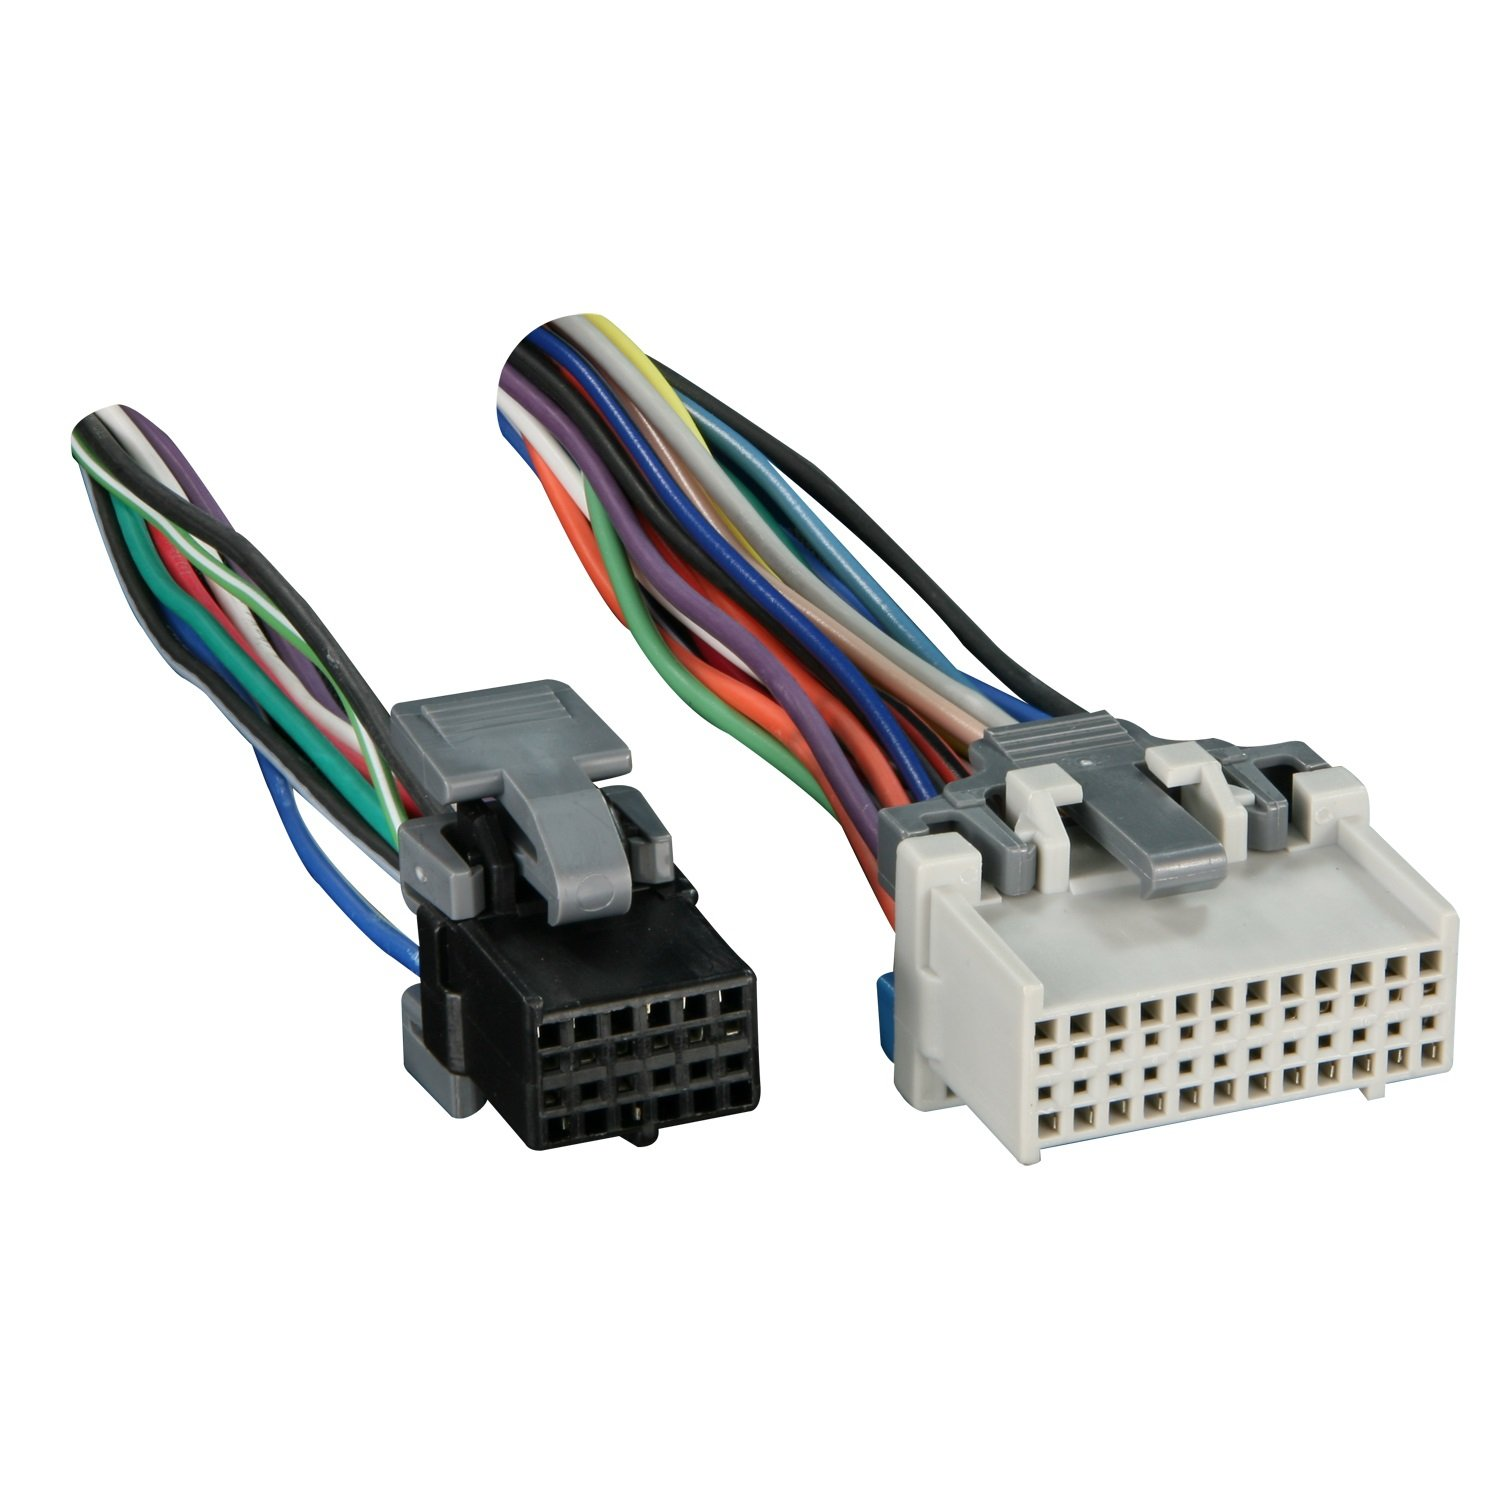 711log4bdML._SL1500_ amazon com metra turbowires 71 2003 1 wiring harness car electronics harness wire for car stereo at gsmx.co